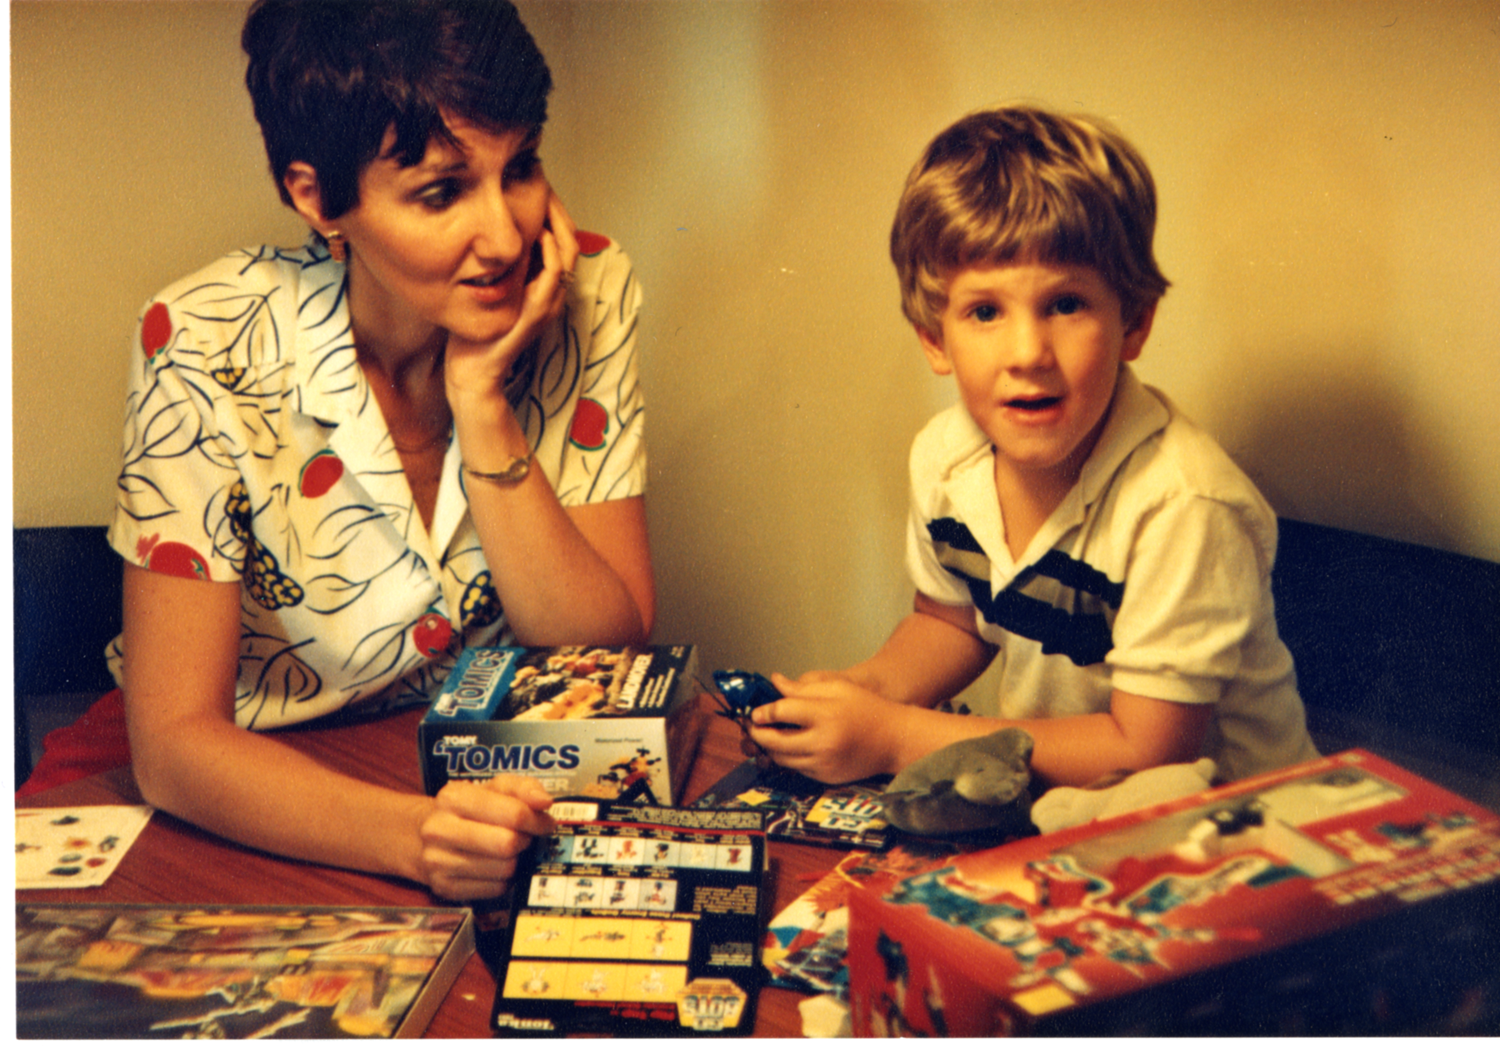 Sue and Dylan Klebold